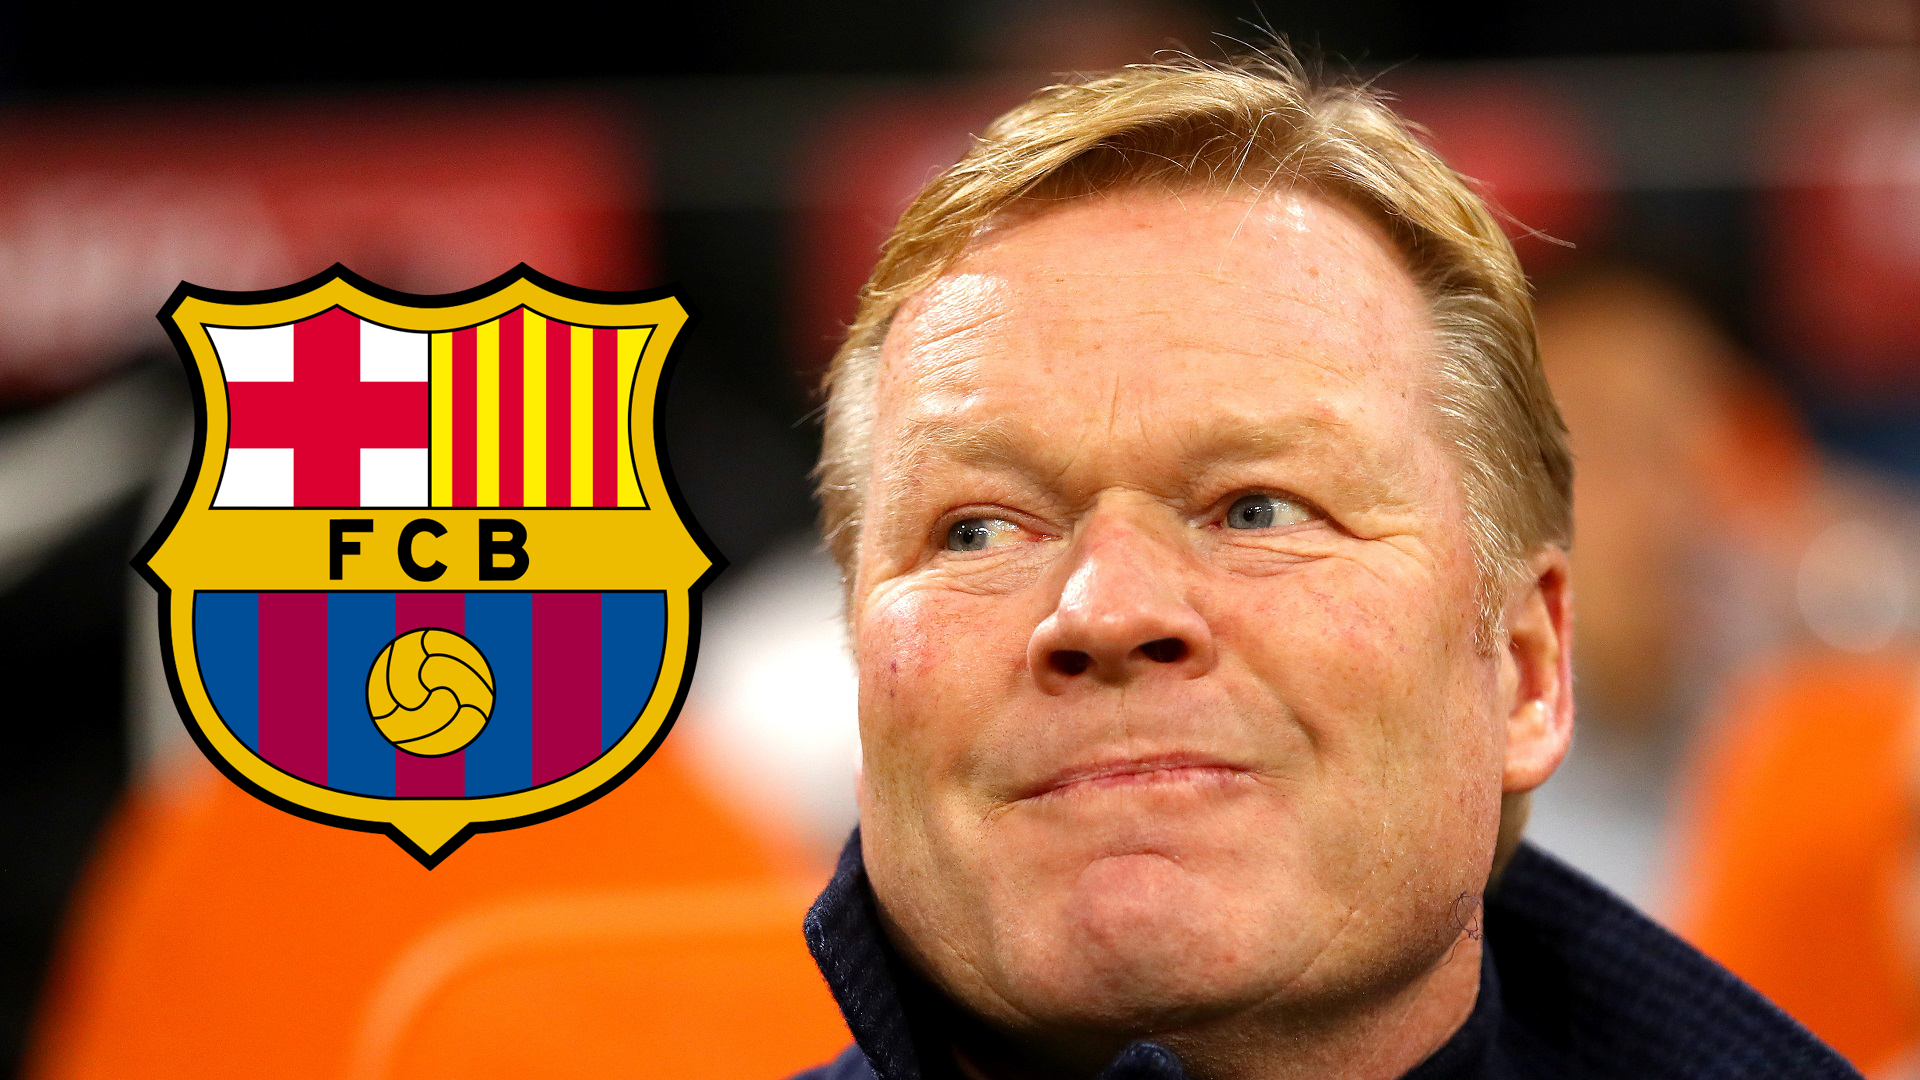 Everyone knows my dream is to coach Barca - Koeman